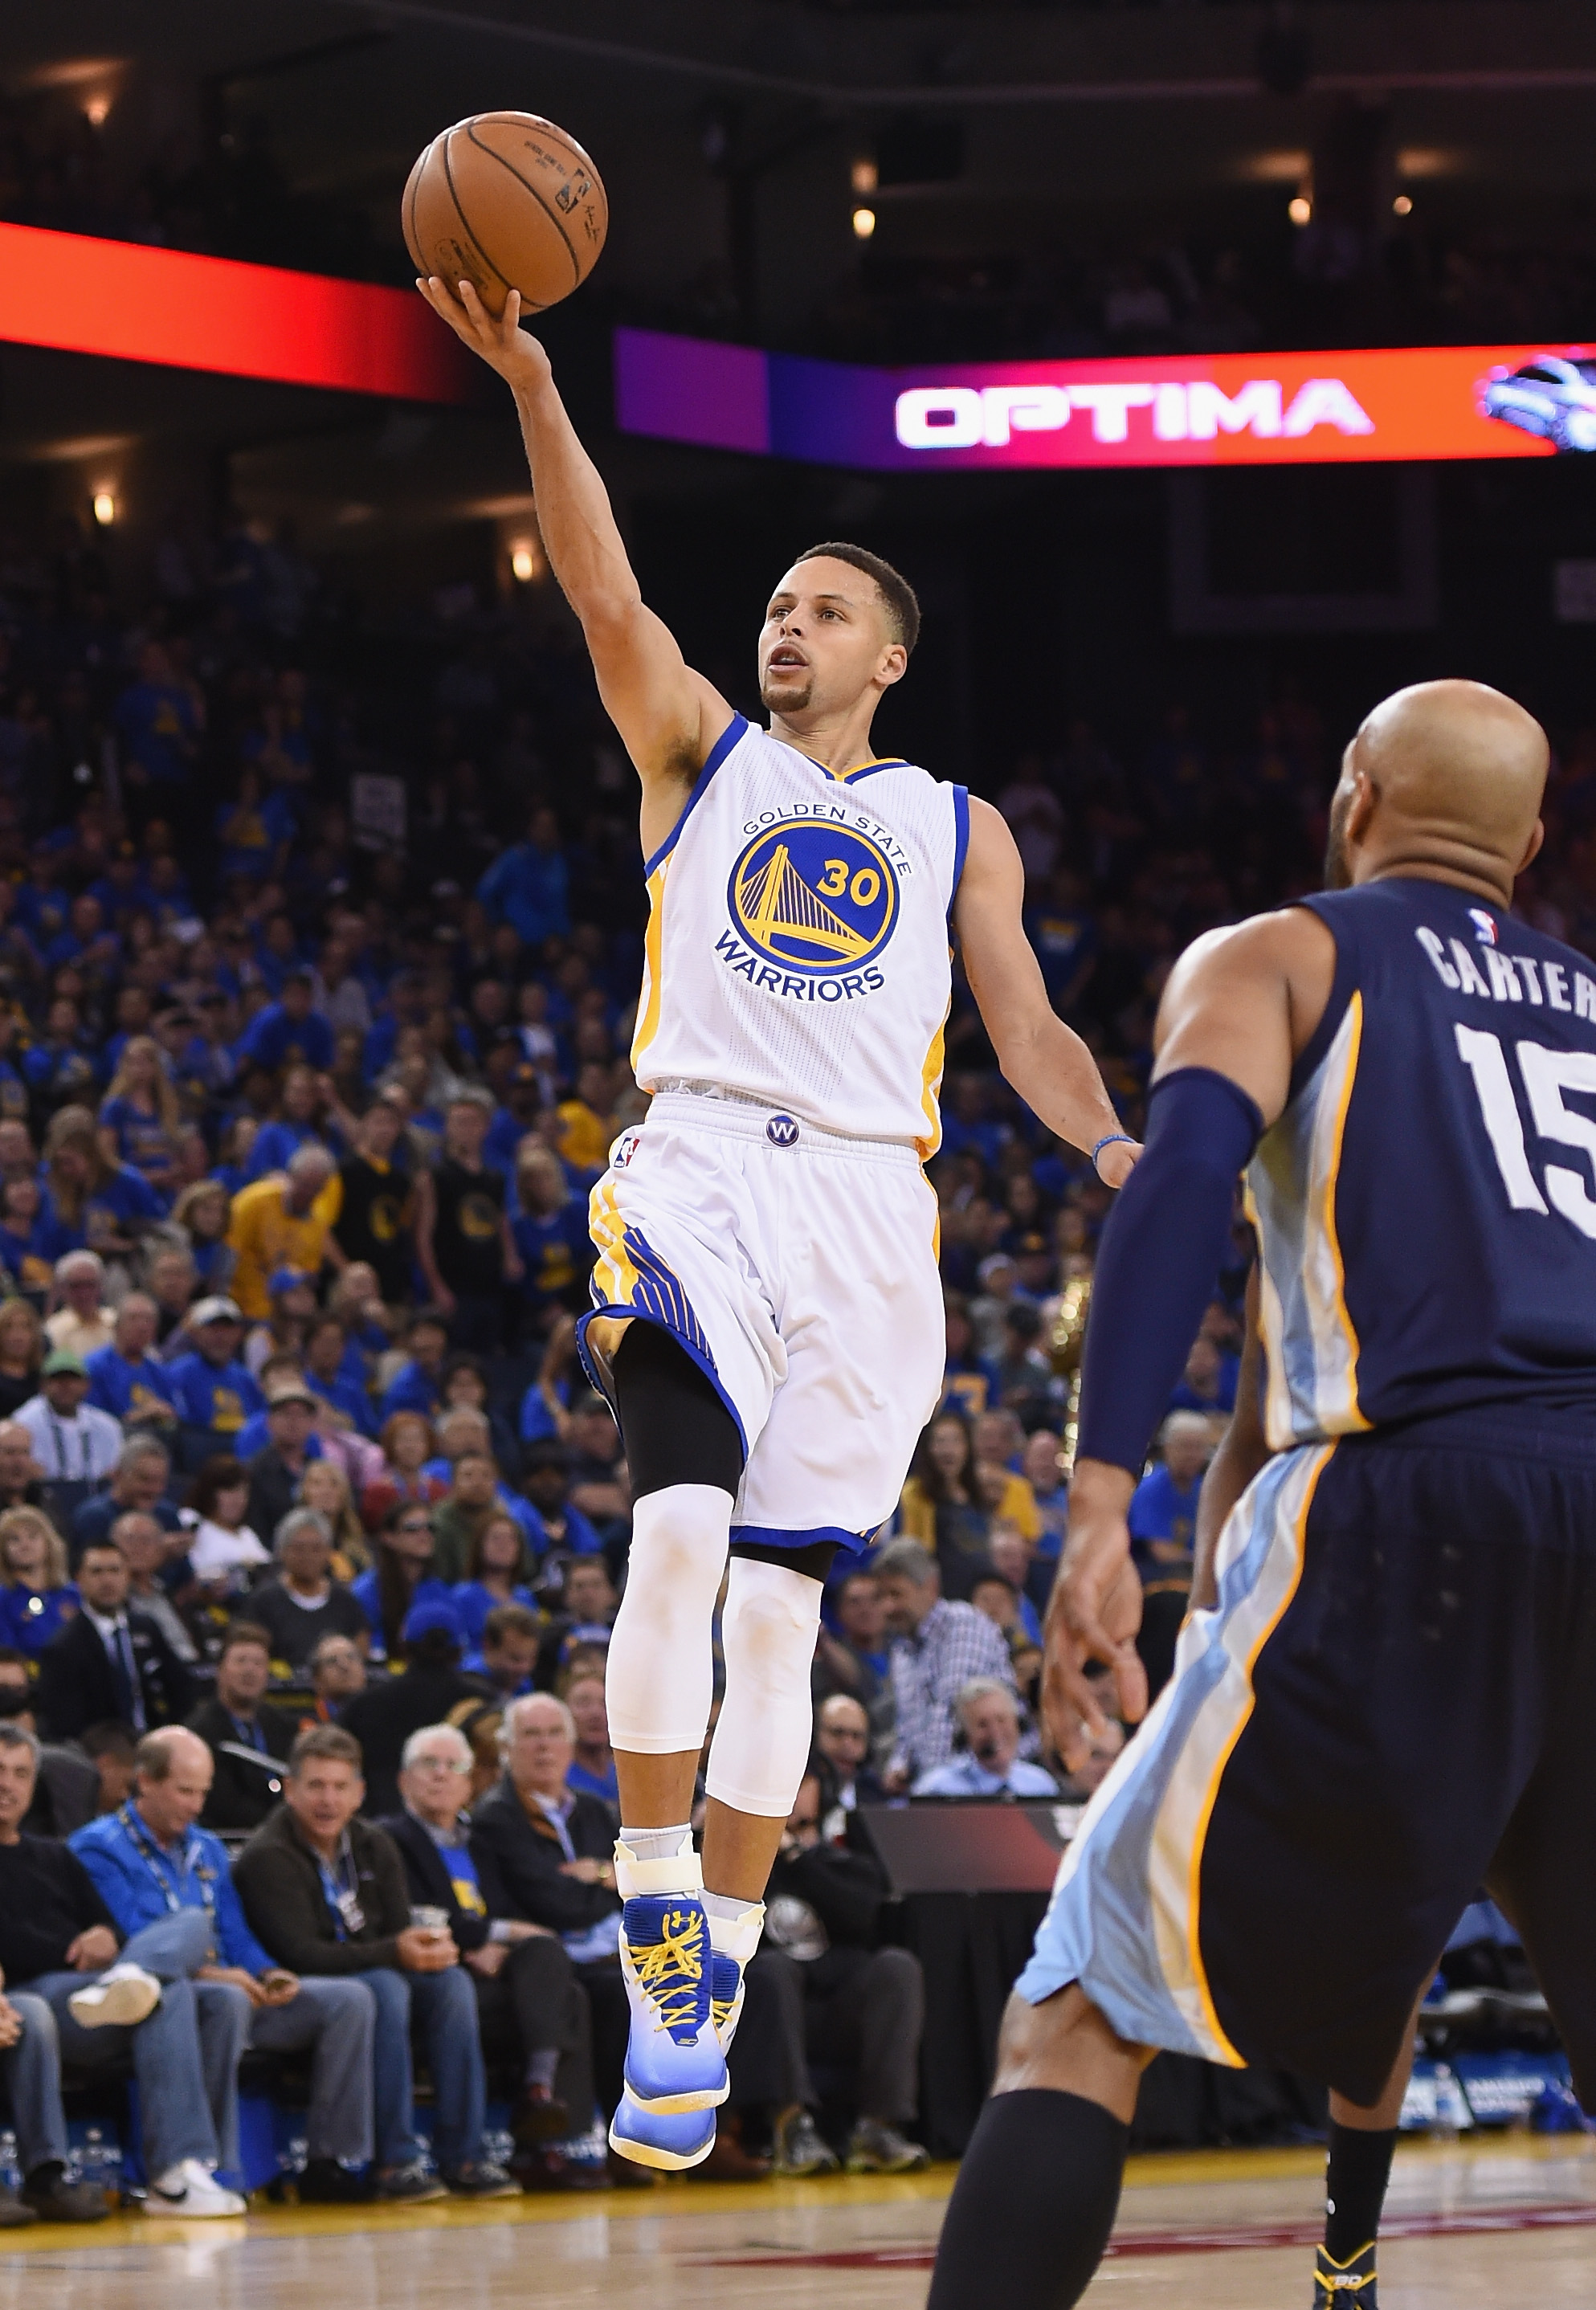 OAKLAND, CA - APRIL 13:  Stephen Curry #30 of the Golden State Warriors shoots the ball in the second half against the Memphis Grizzlies during the game at ORACLE Arena on April 13, 2016 in Oakland, California.  (Photo by Thearon W. Henderson/Getty Images